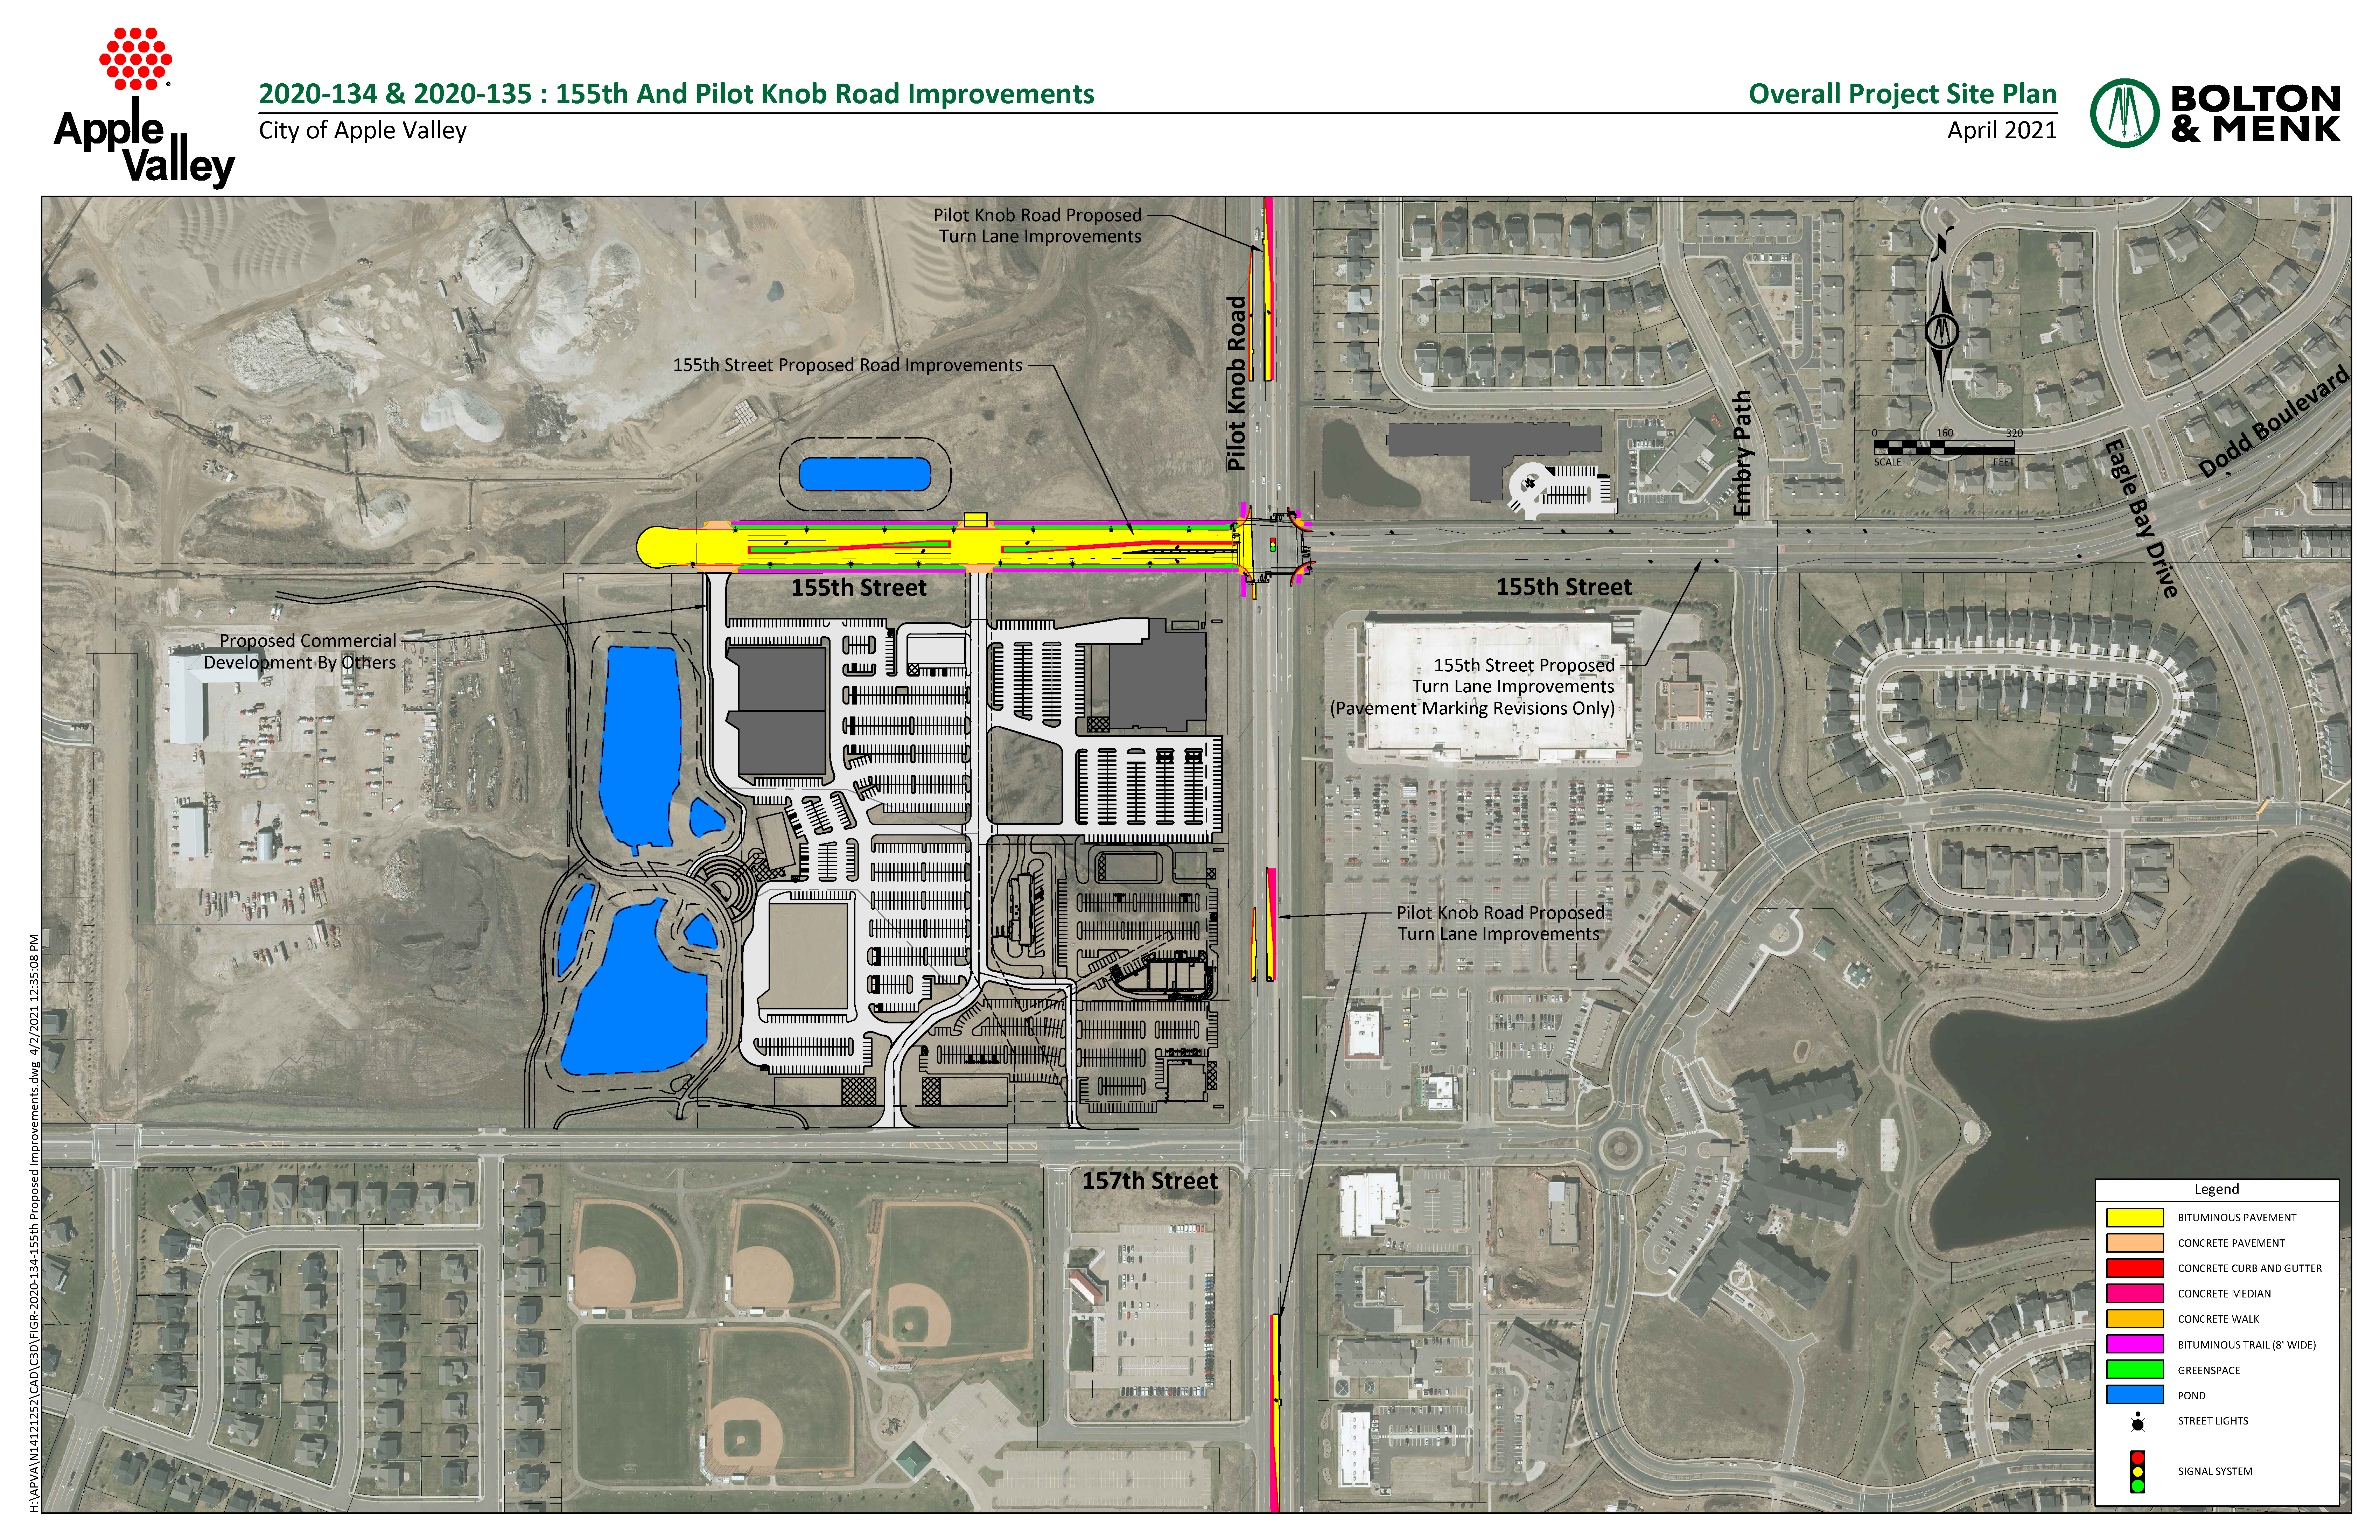 Map of the project improvements